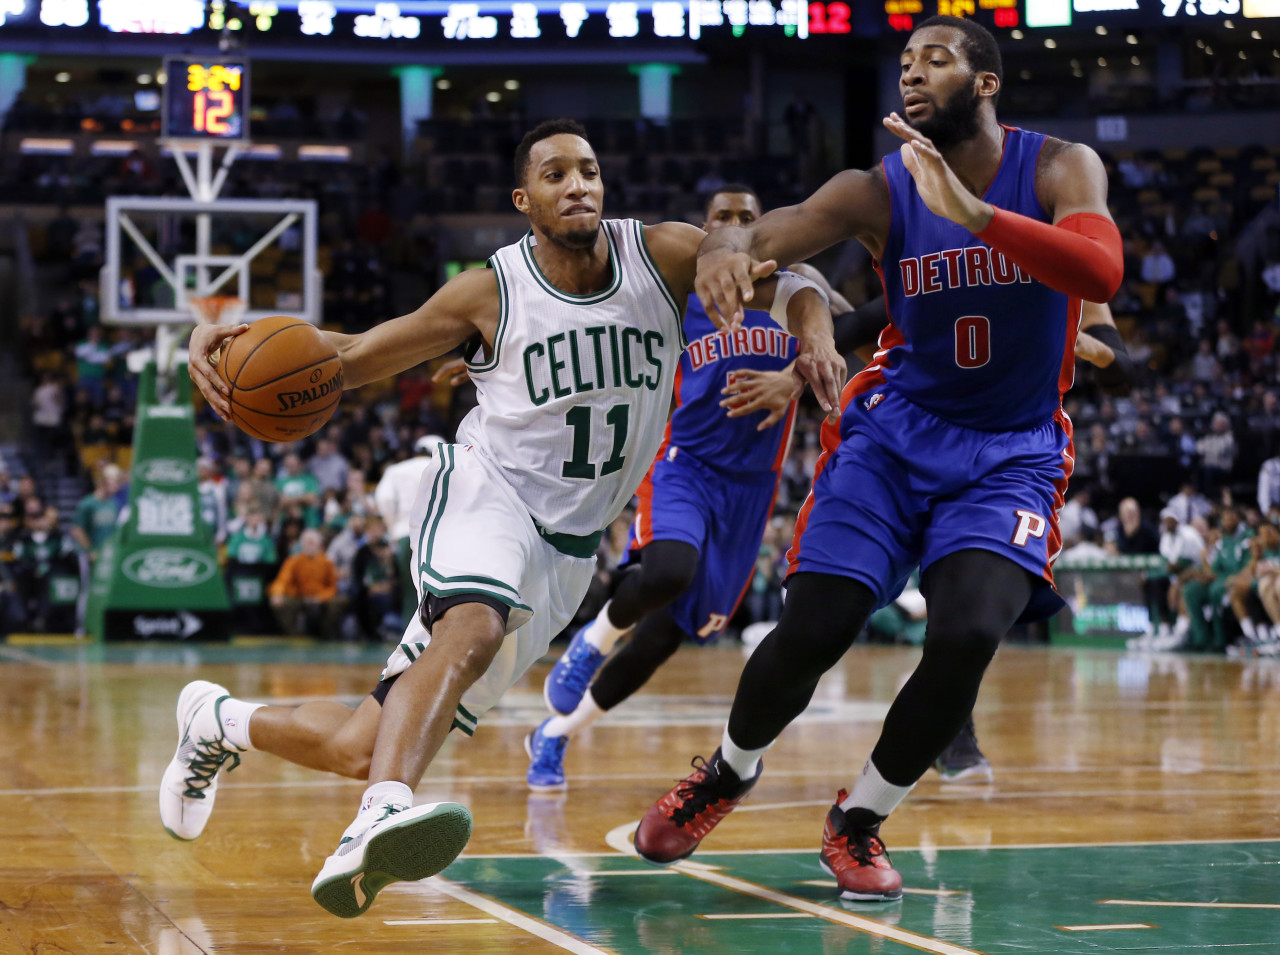 Boston Celtics guard Evan Turner (11) drives on Detroit Pistons center Andre Drummond (0) during the fourth quarter of an NBA basketball game in Boston on Wednesday. (Elise Amendola/AP)